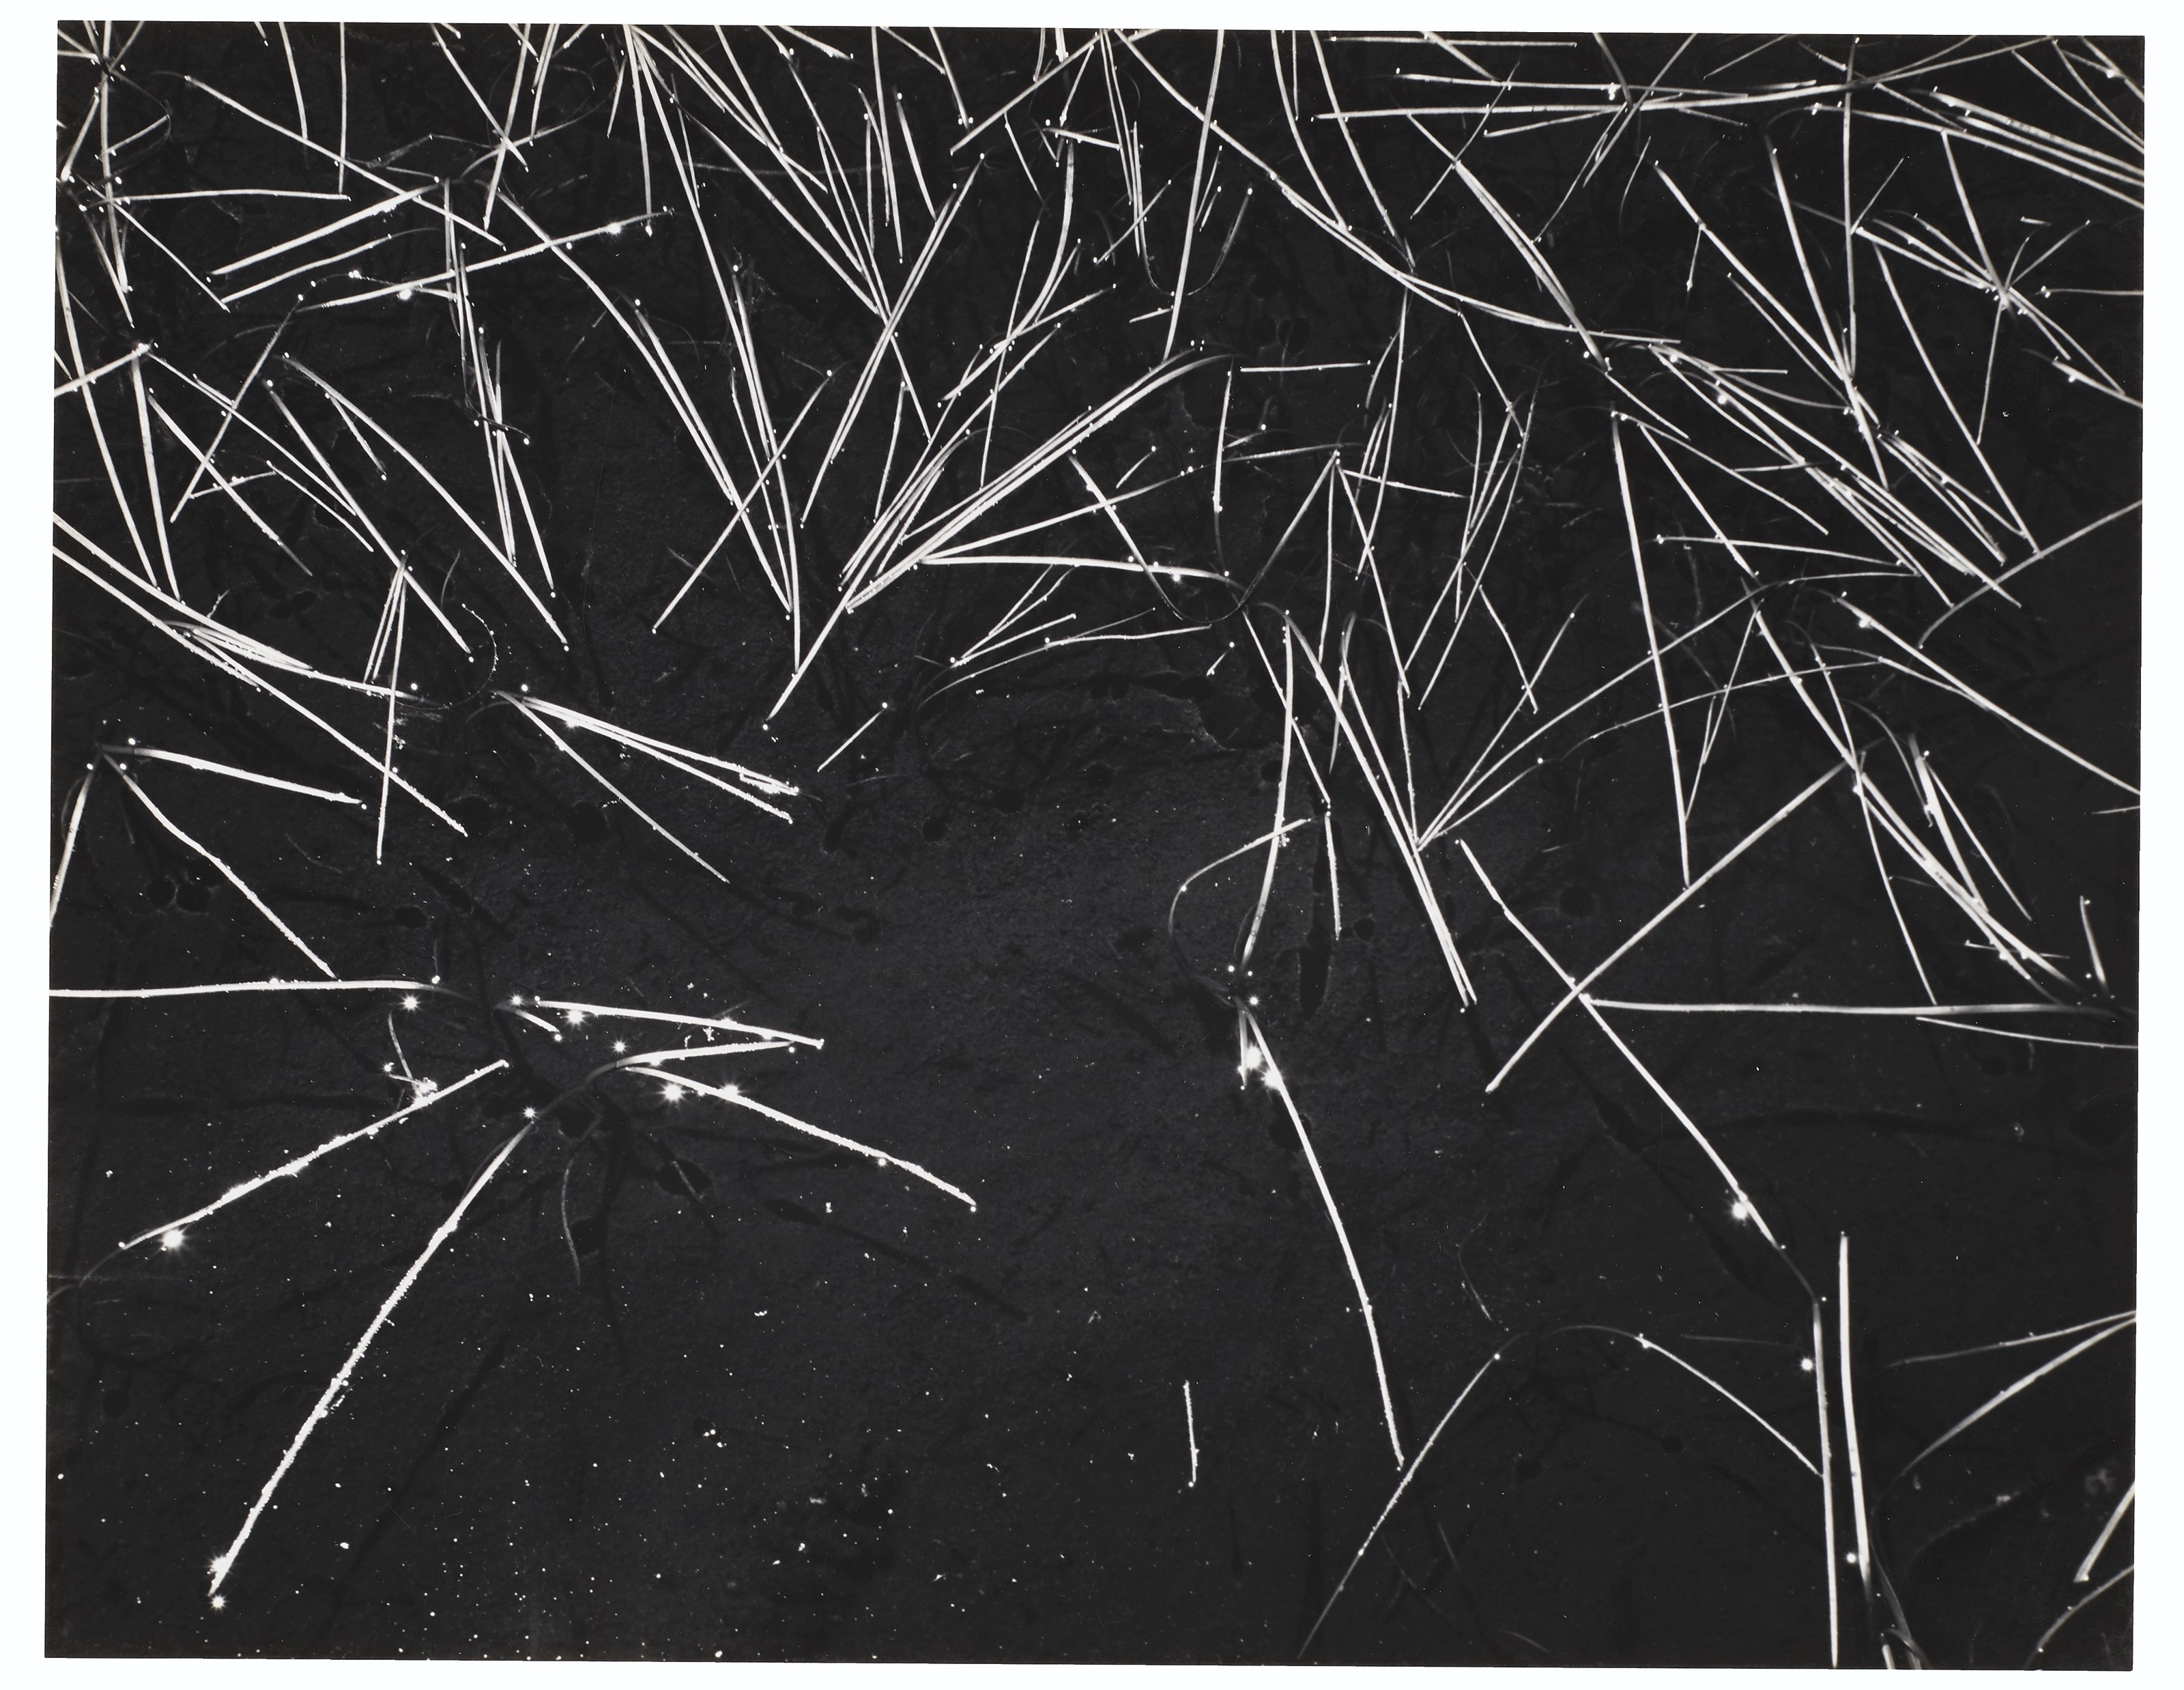 Ansel Adams and the American West: Photographs from the Center for Creative Photography